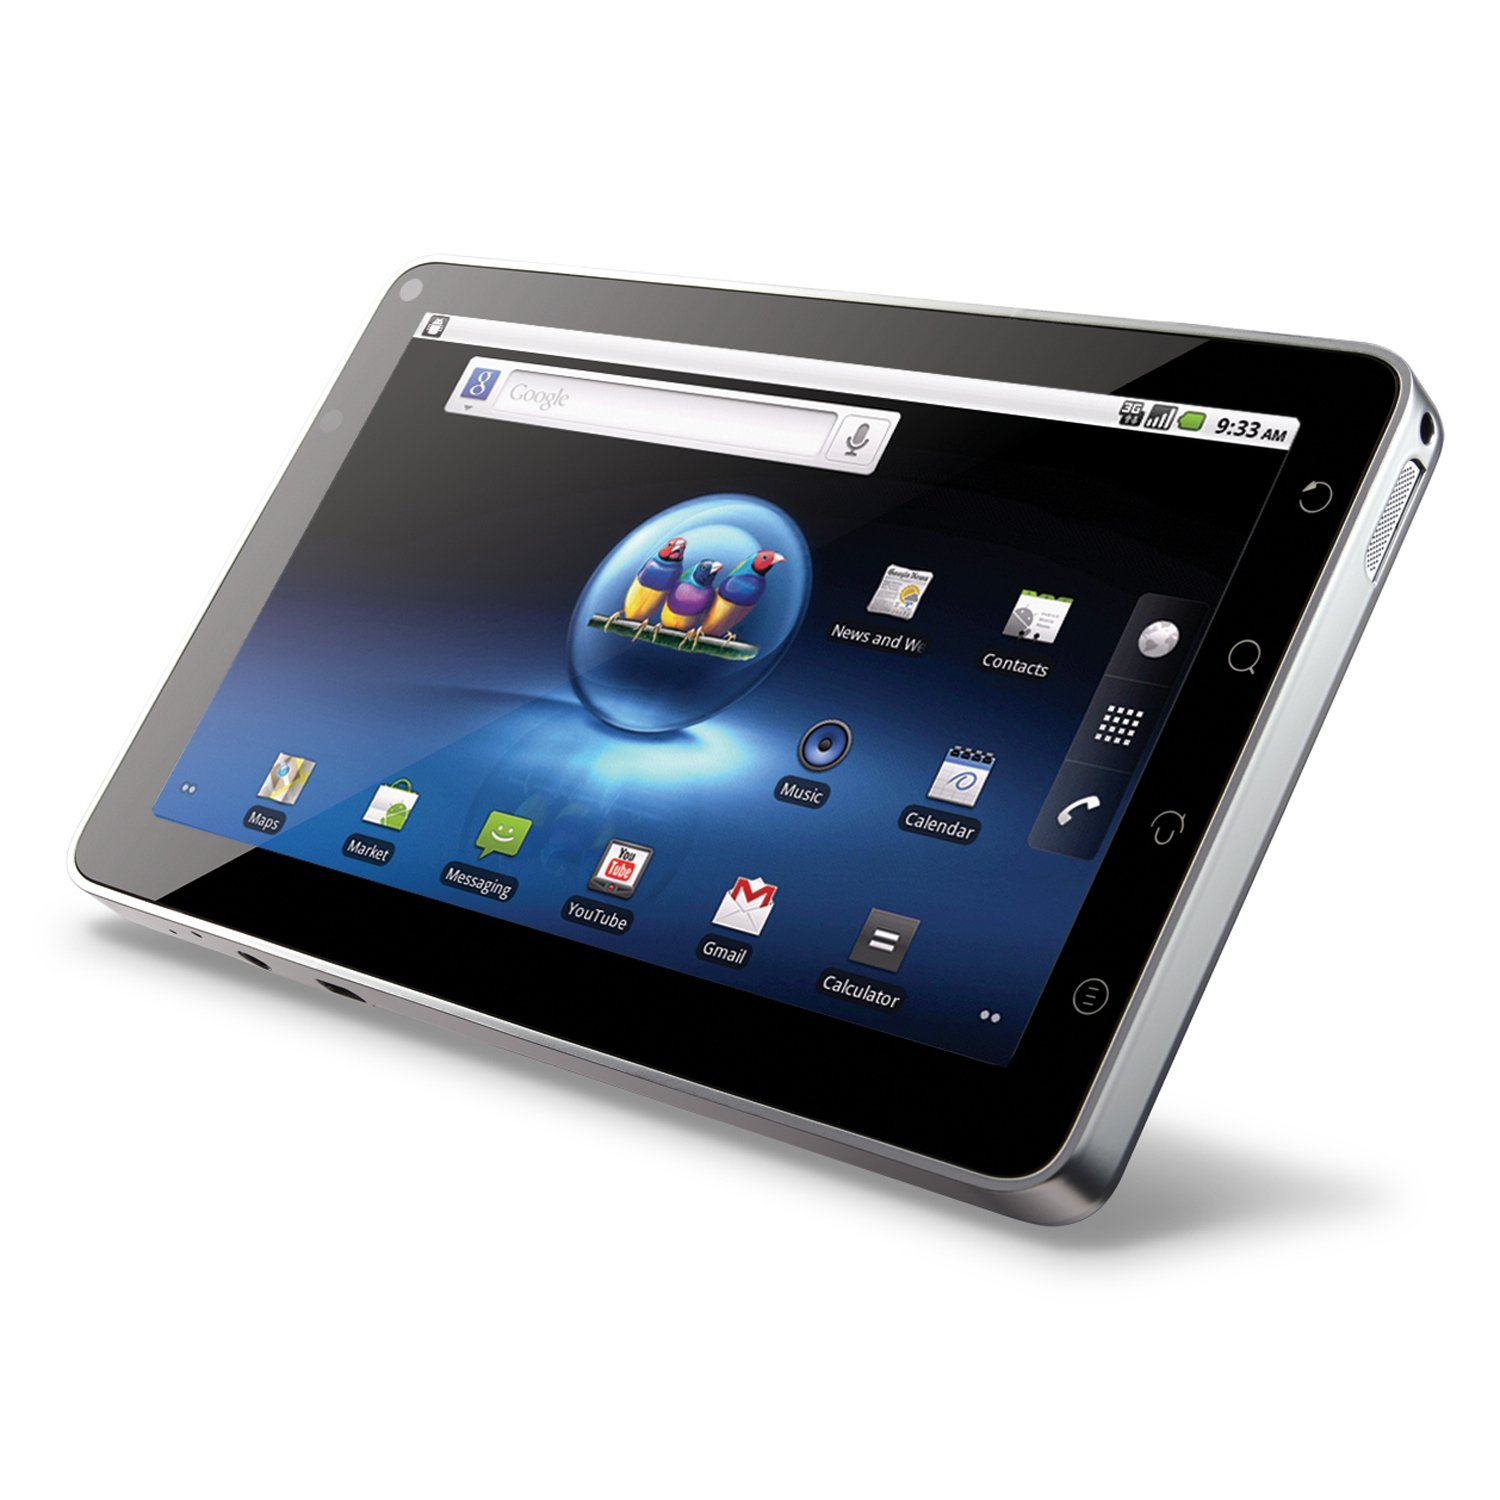 ViewSonic+ViewPad+7+7-Inch+Android+2.2+Tablet2.jpg